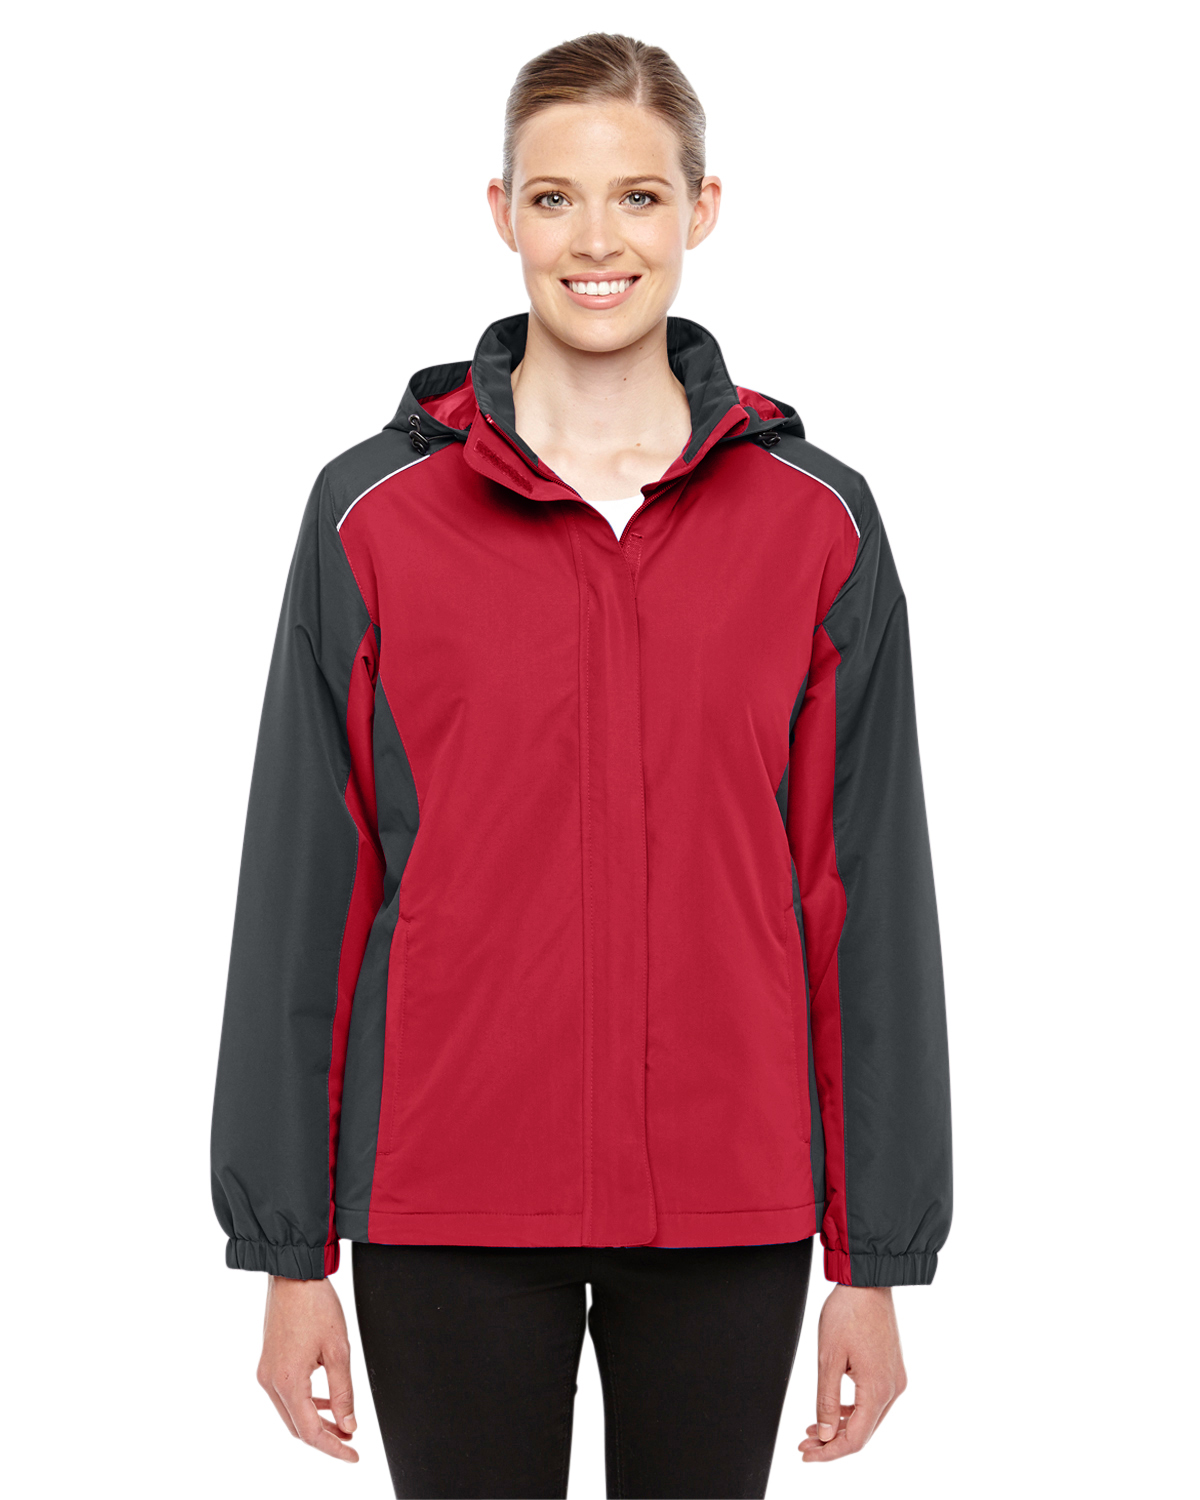 Ash City - 78225, Ladies' Core 365 Inspire Colorblock All-Season Jacket, Embroidery, Screen Printing - Logo Masters International